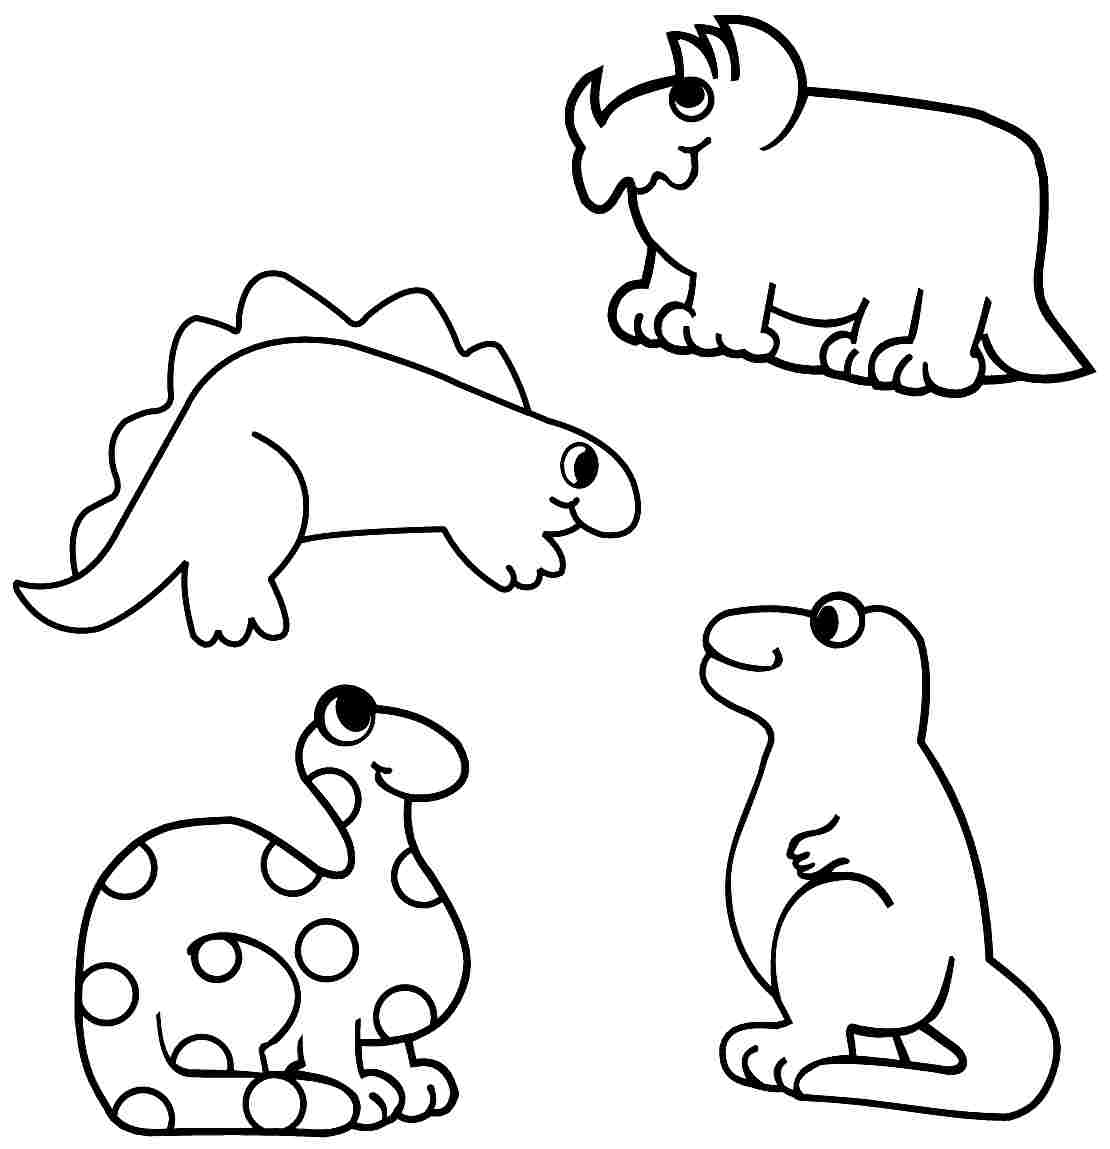 Big Dinasour Coloring Pages Beautiful Dinosaur Preschool Fo Gallery Of Dinosaur Clipart Coloring Page Triceratop Pencil and In Color Gallery